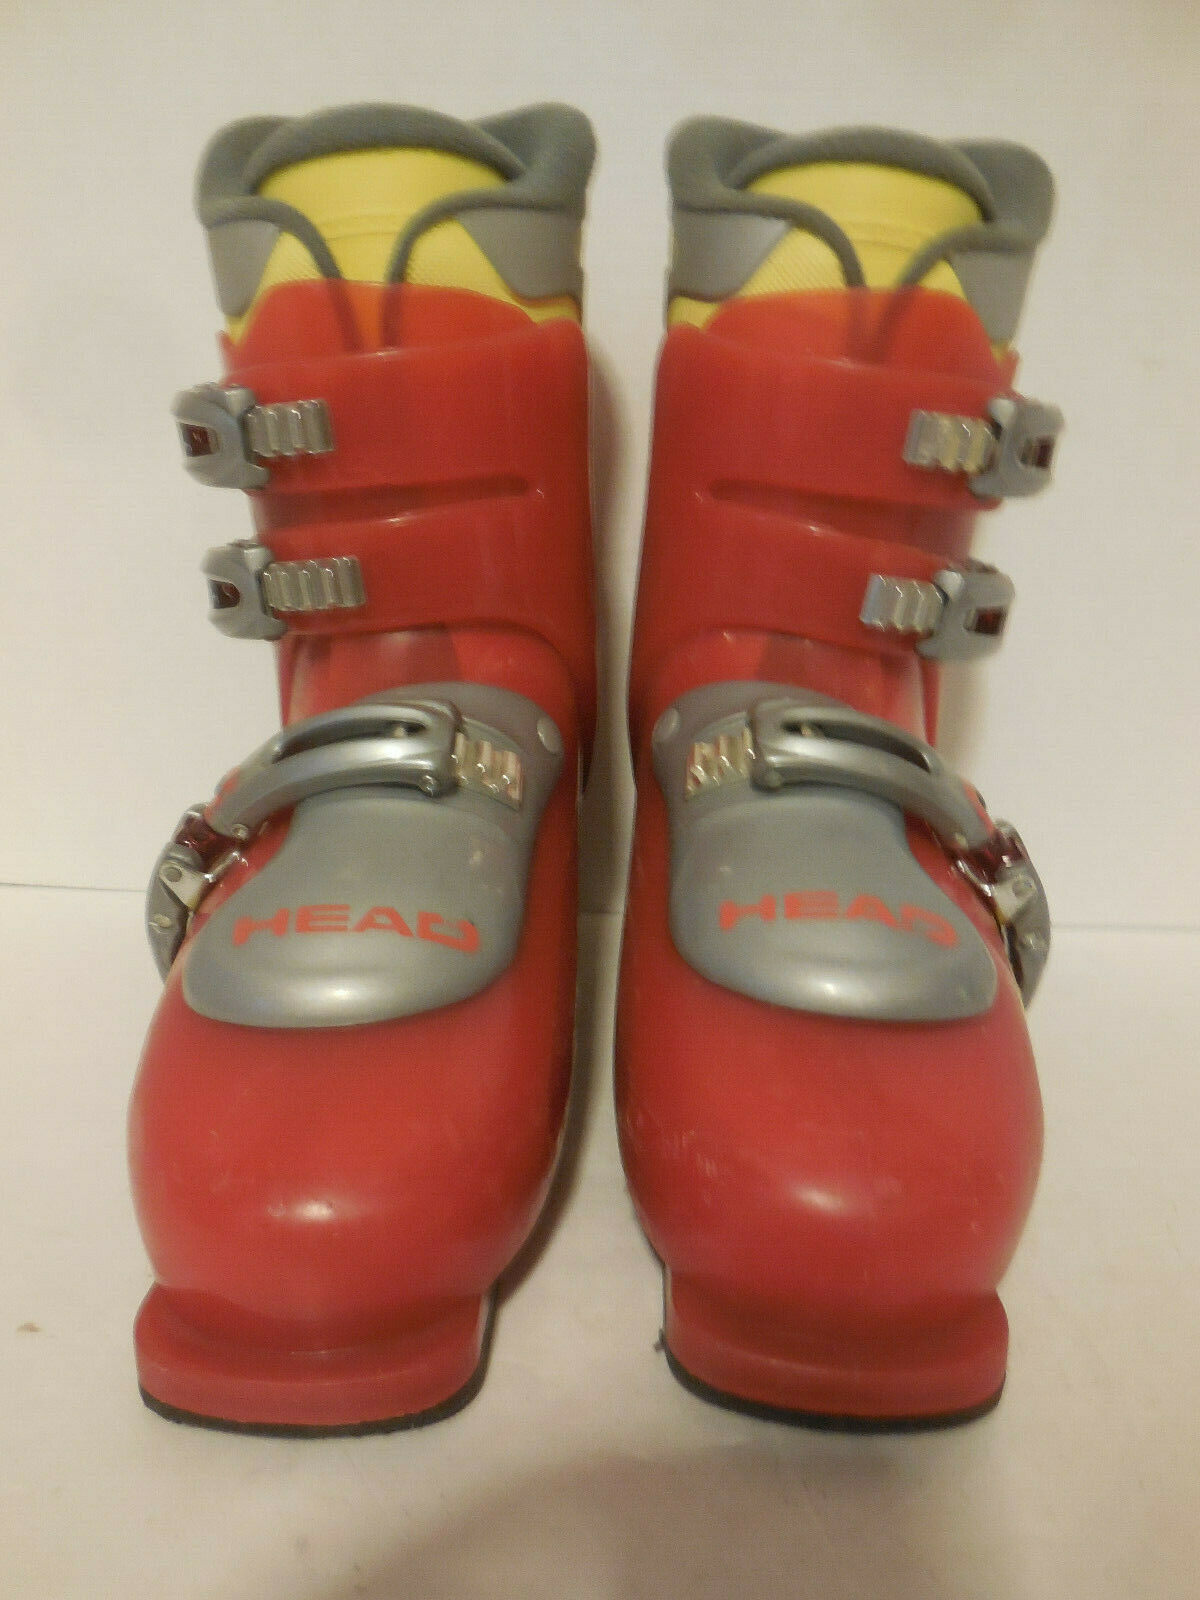 Head Carve X3 Red Ski Boots 260 - 265 Womens 9 US Mens 8 US